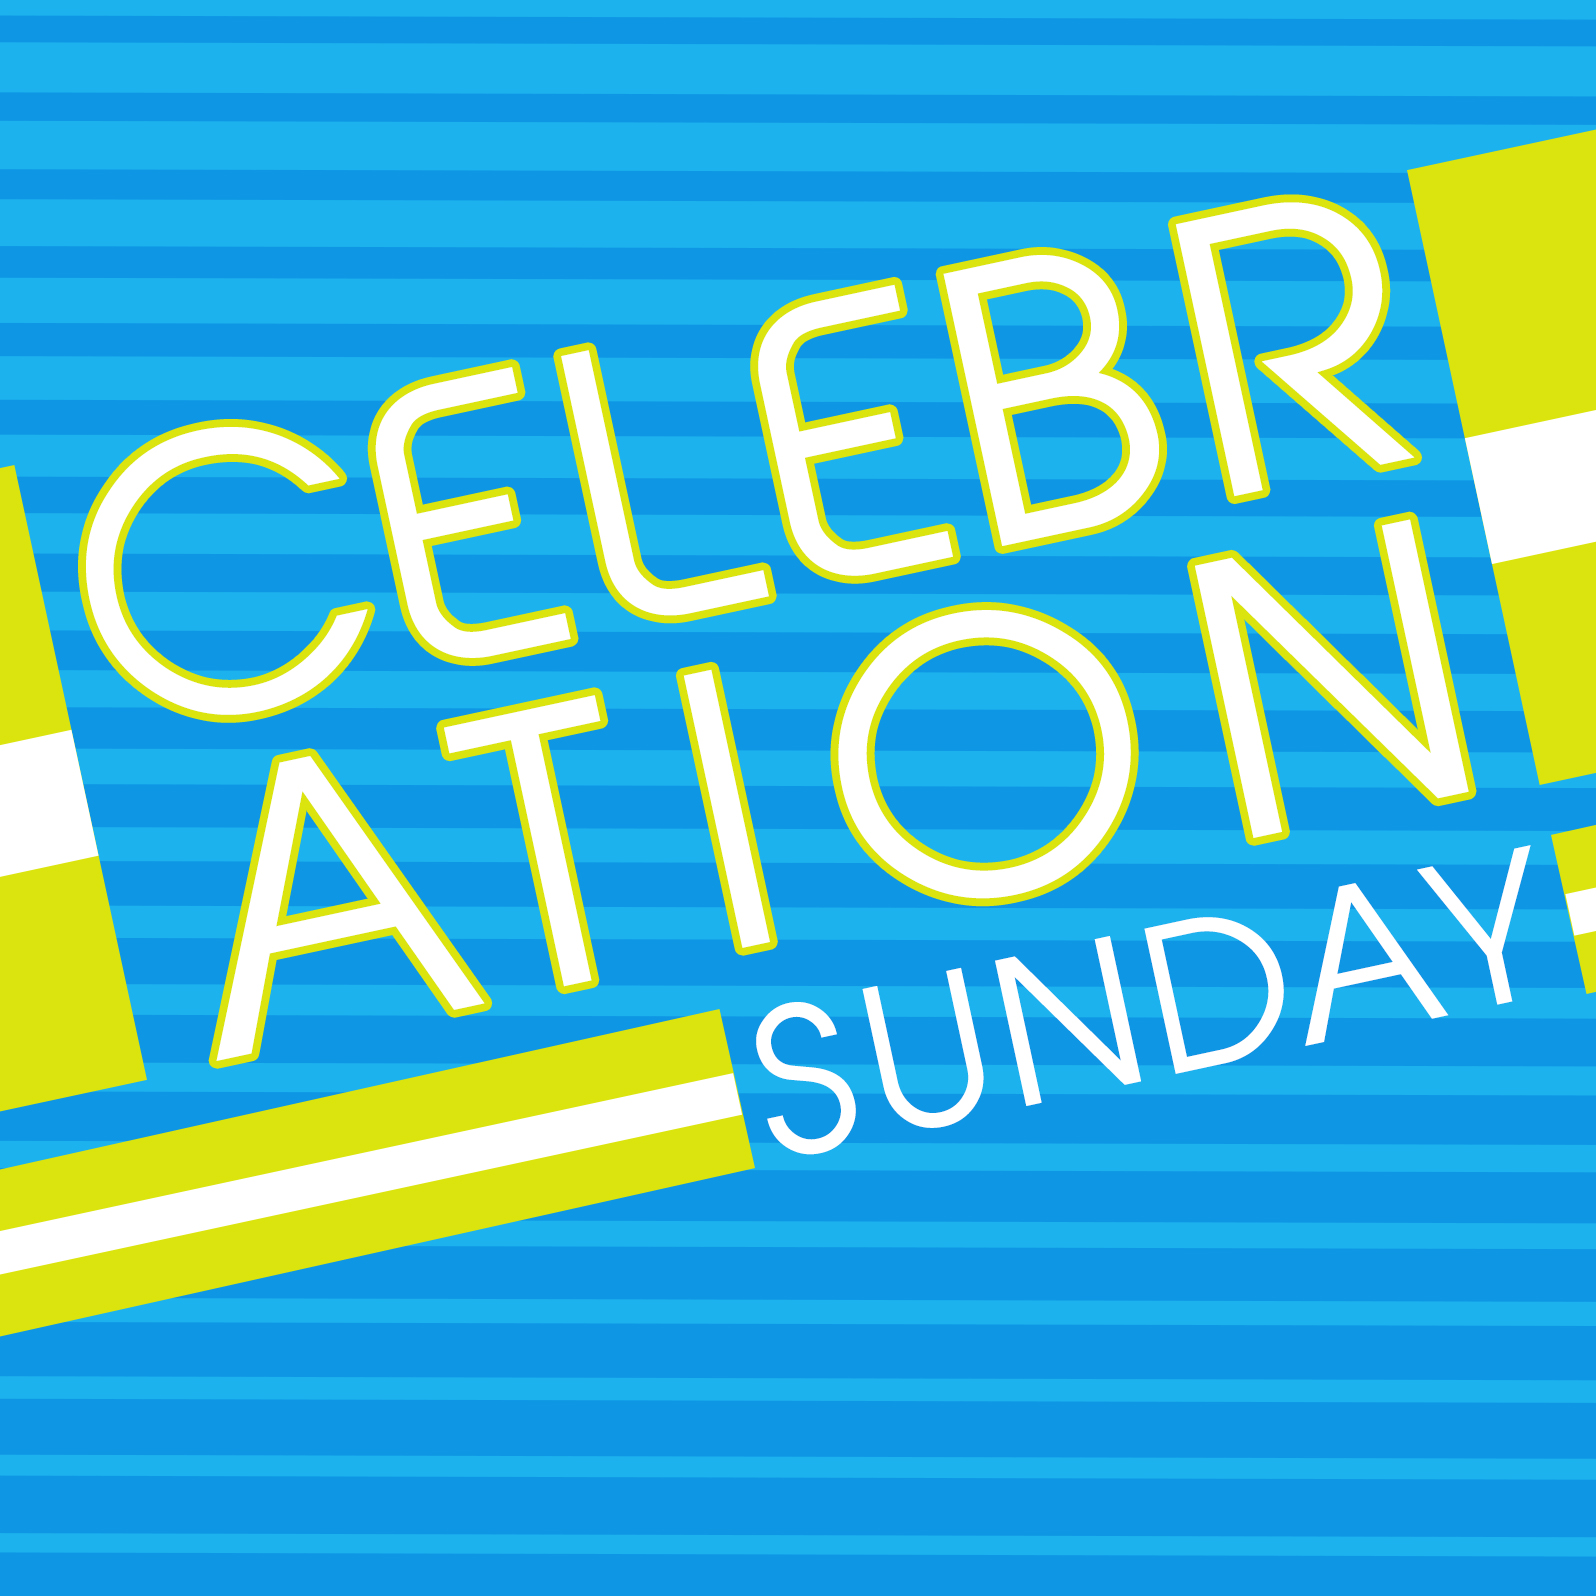 May 22 – Celebration Sunday